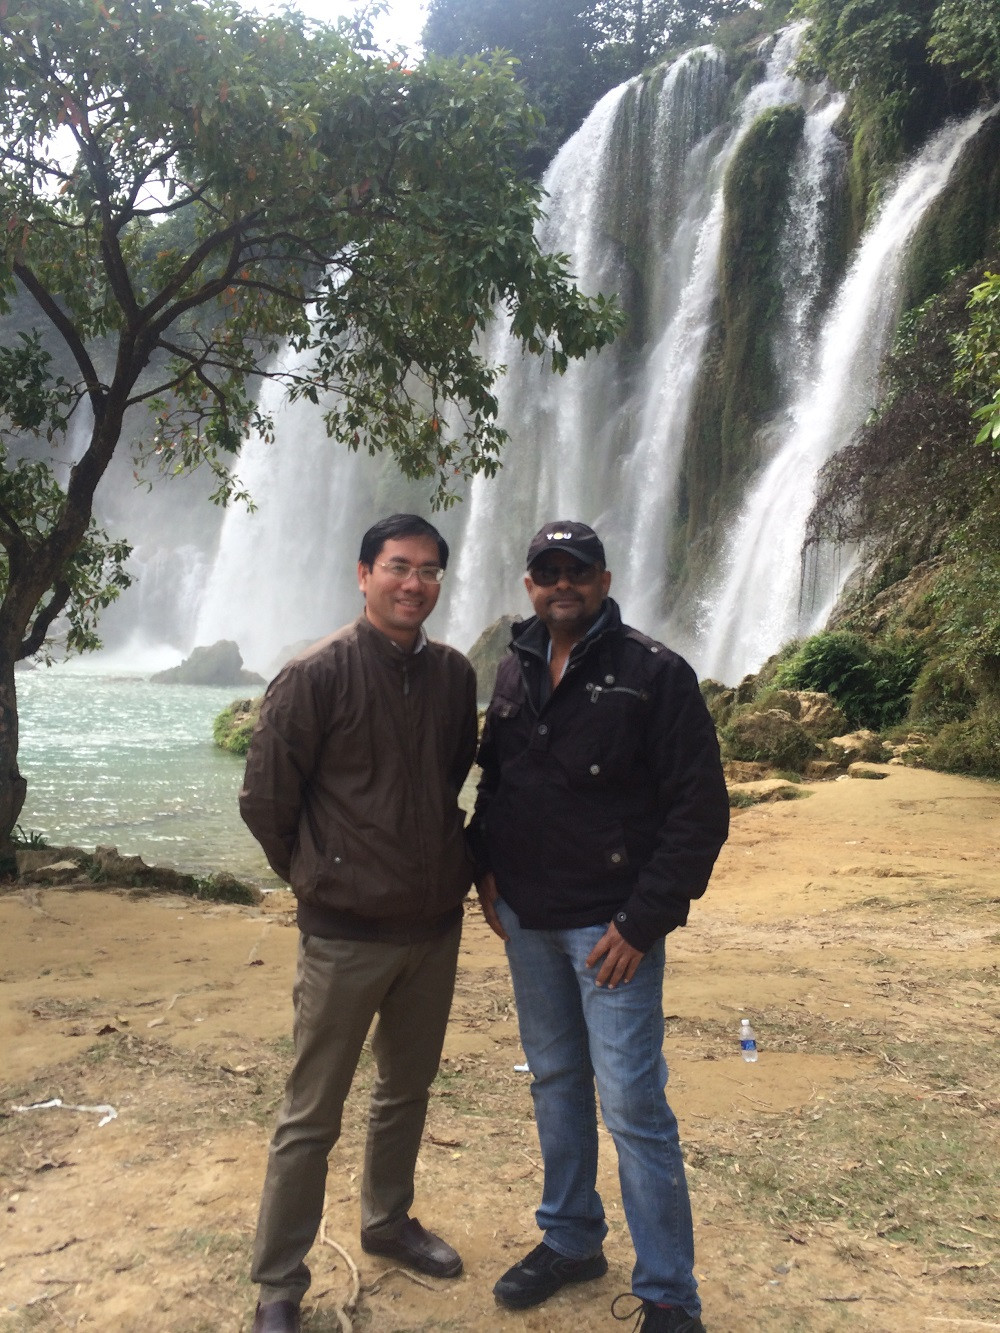 Fixer in Vietnam - Andy Nguyen and Director of Photography - Sabapathy Thirunavukkarasu stood in front of Ban Gioc subordinate waterfall.